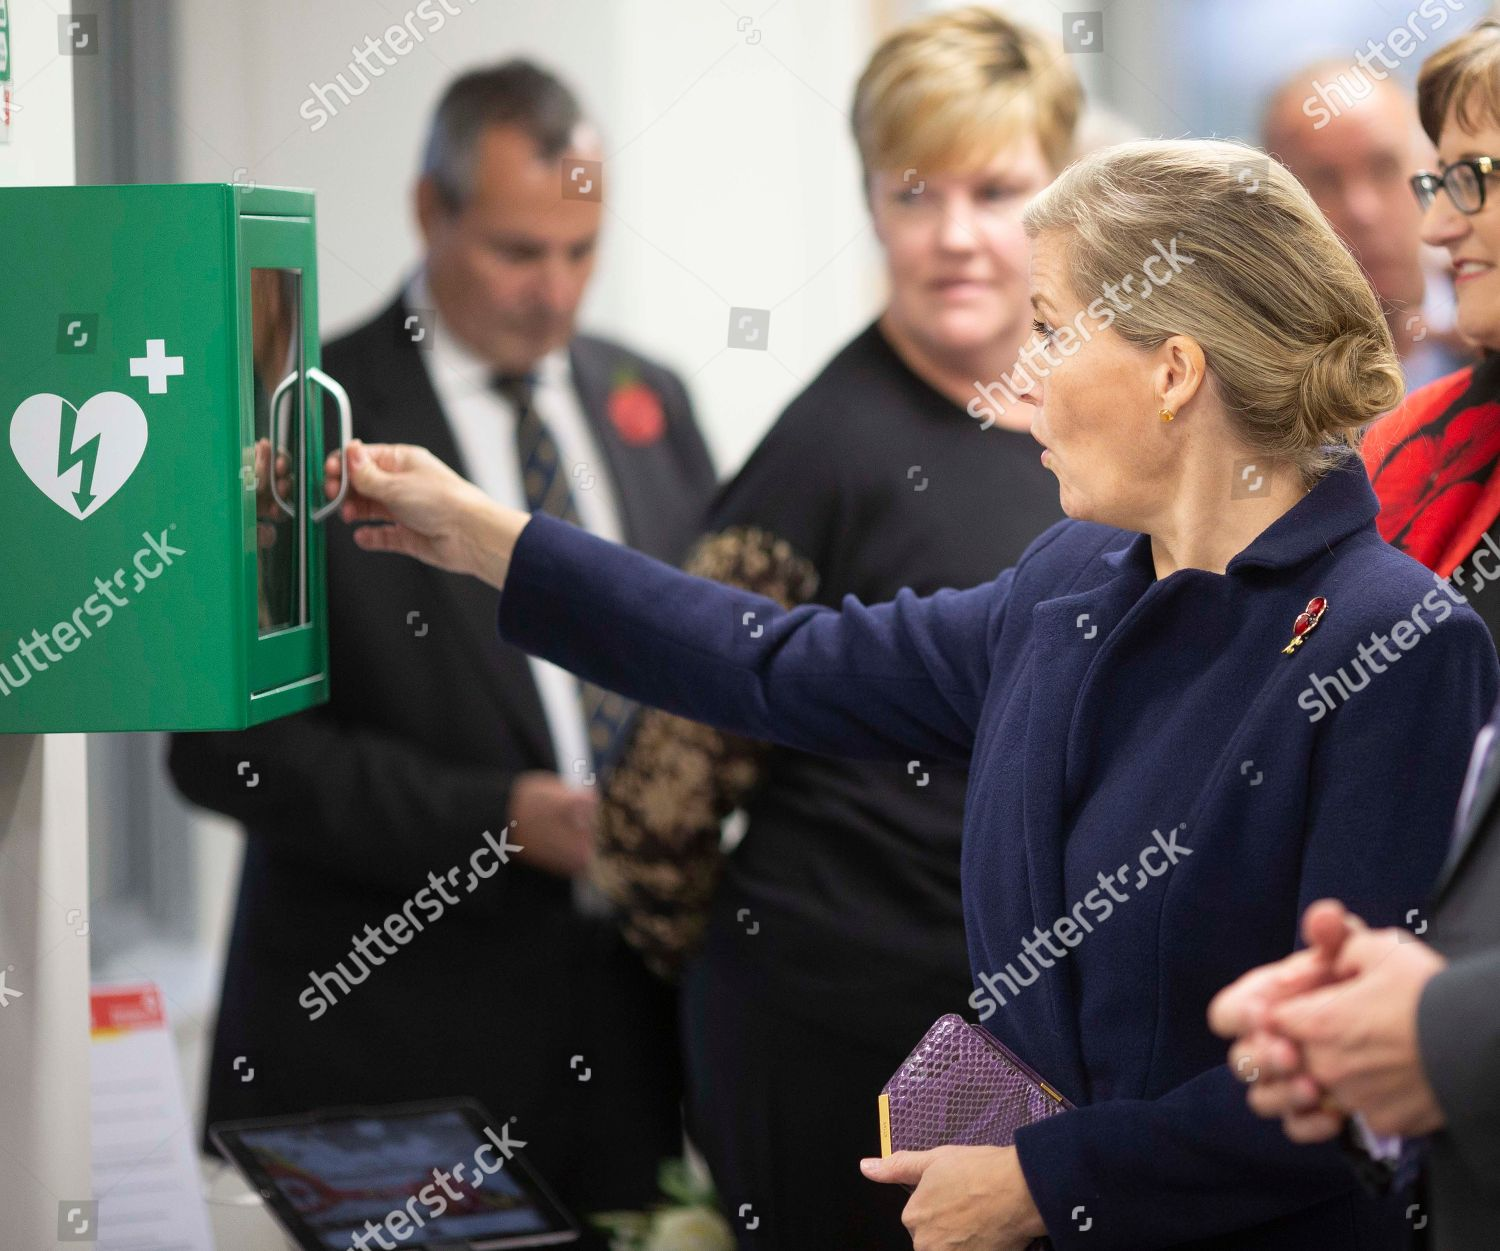 sophie-countess-of-wessex-opens-the-thames-valley-air-ambulance-headquarters-stokenchurch-buckinghamshire-uk-shutterstock-editorial-9968468ad.jpg